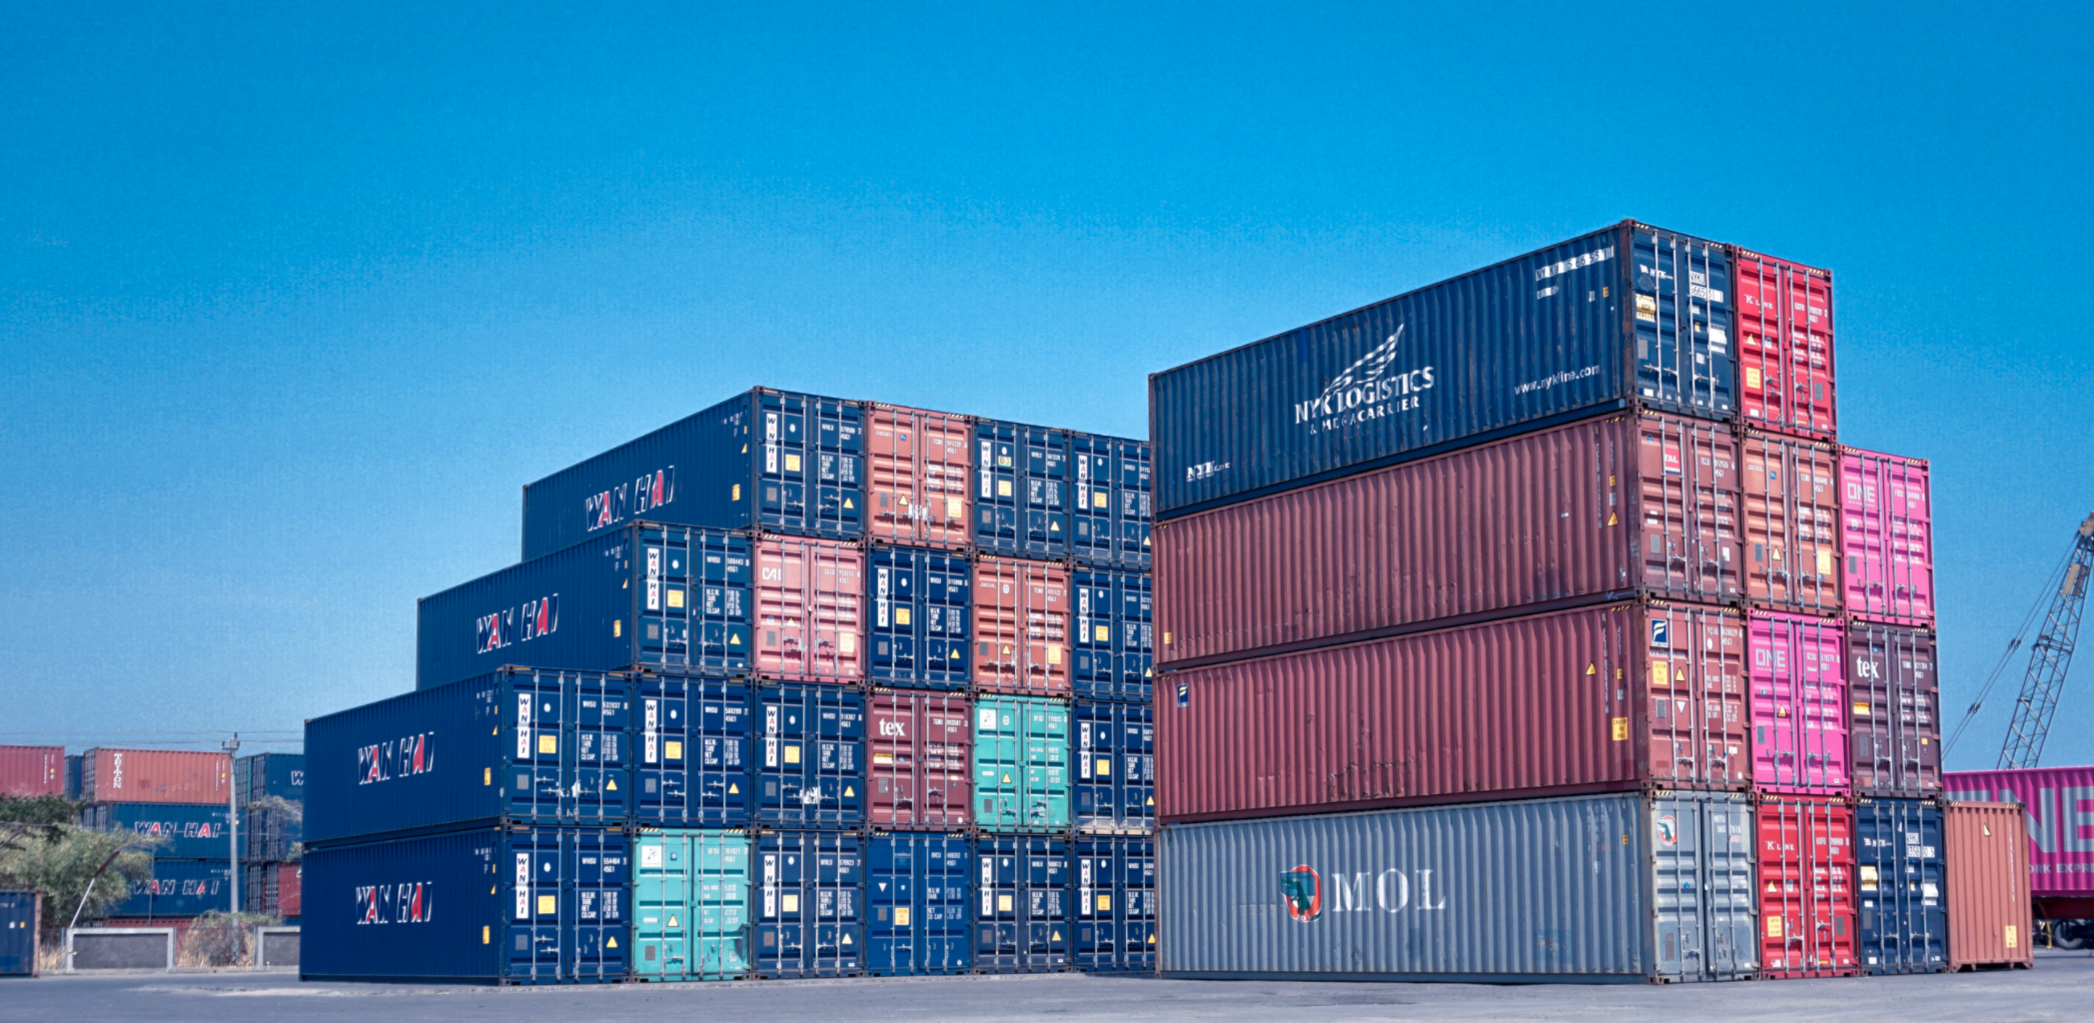 How I Helped Win A Shipping Container On Facebook